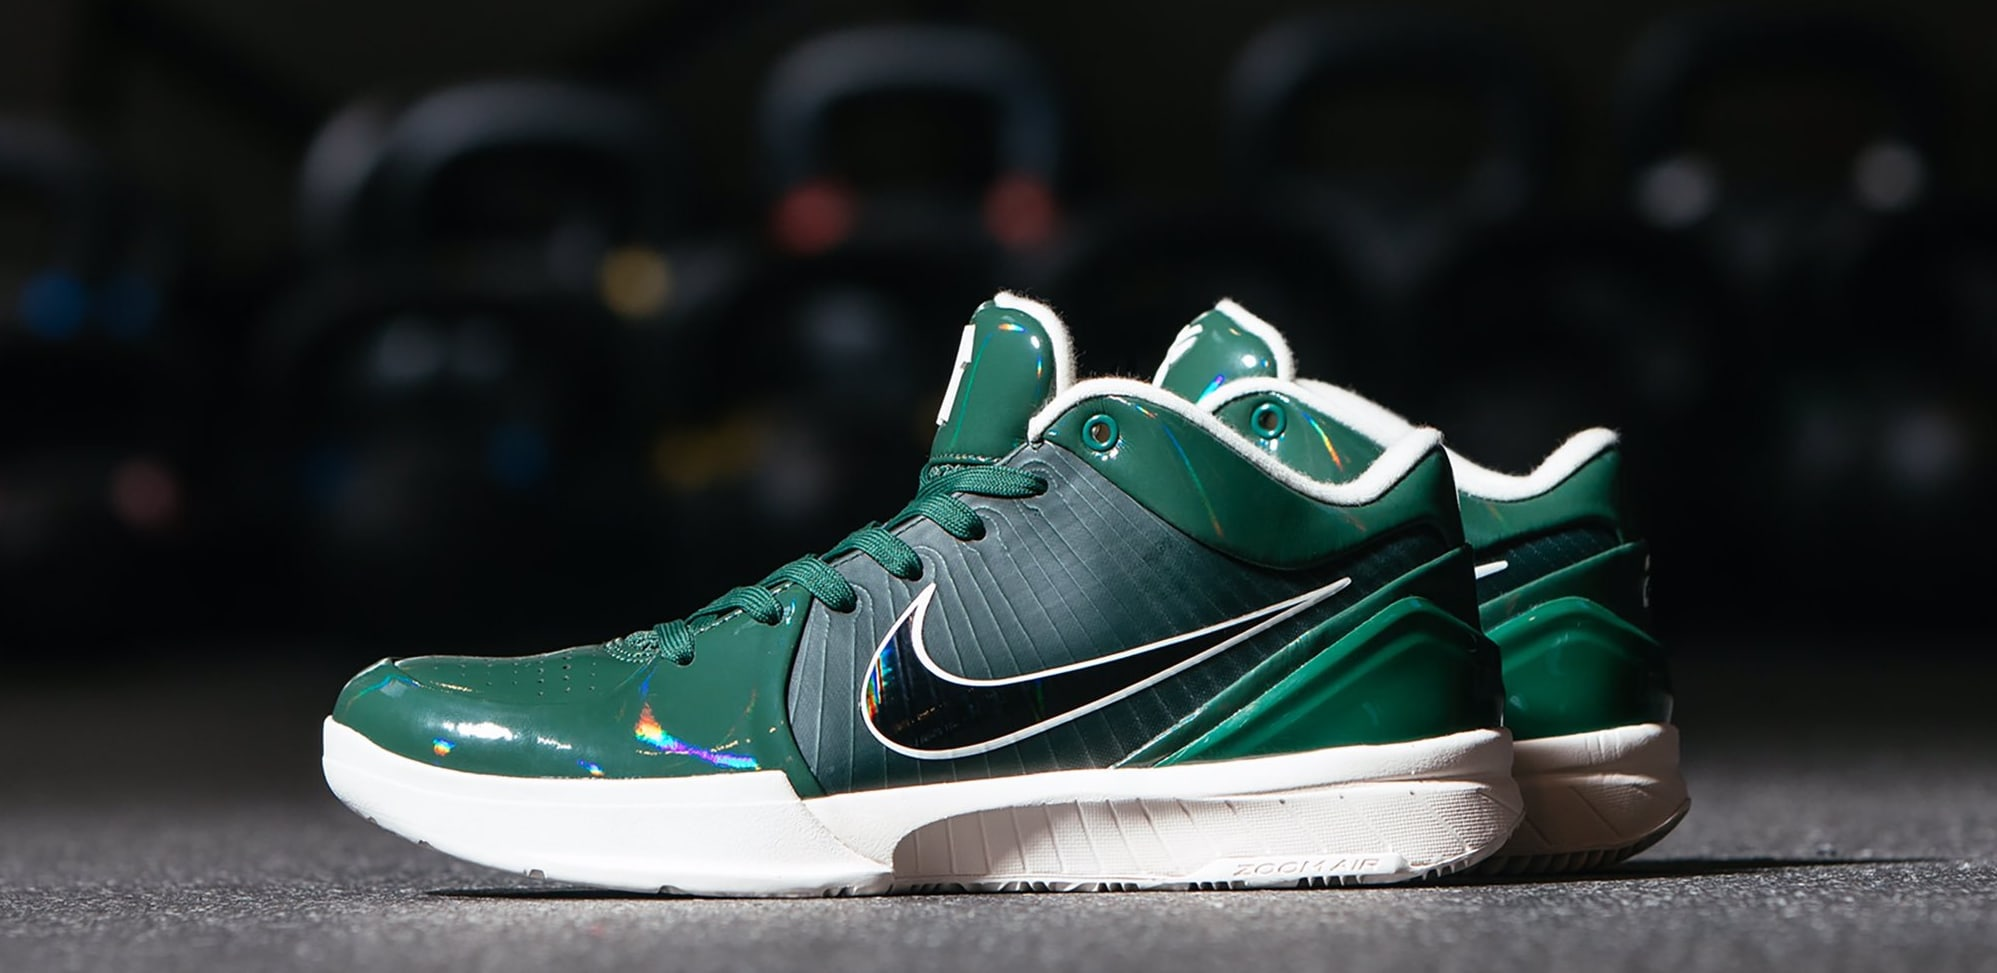 Undefeated x Nike Kobe 4 Protro 'Fir' (Lateral)